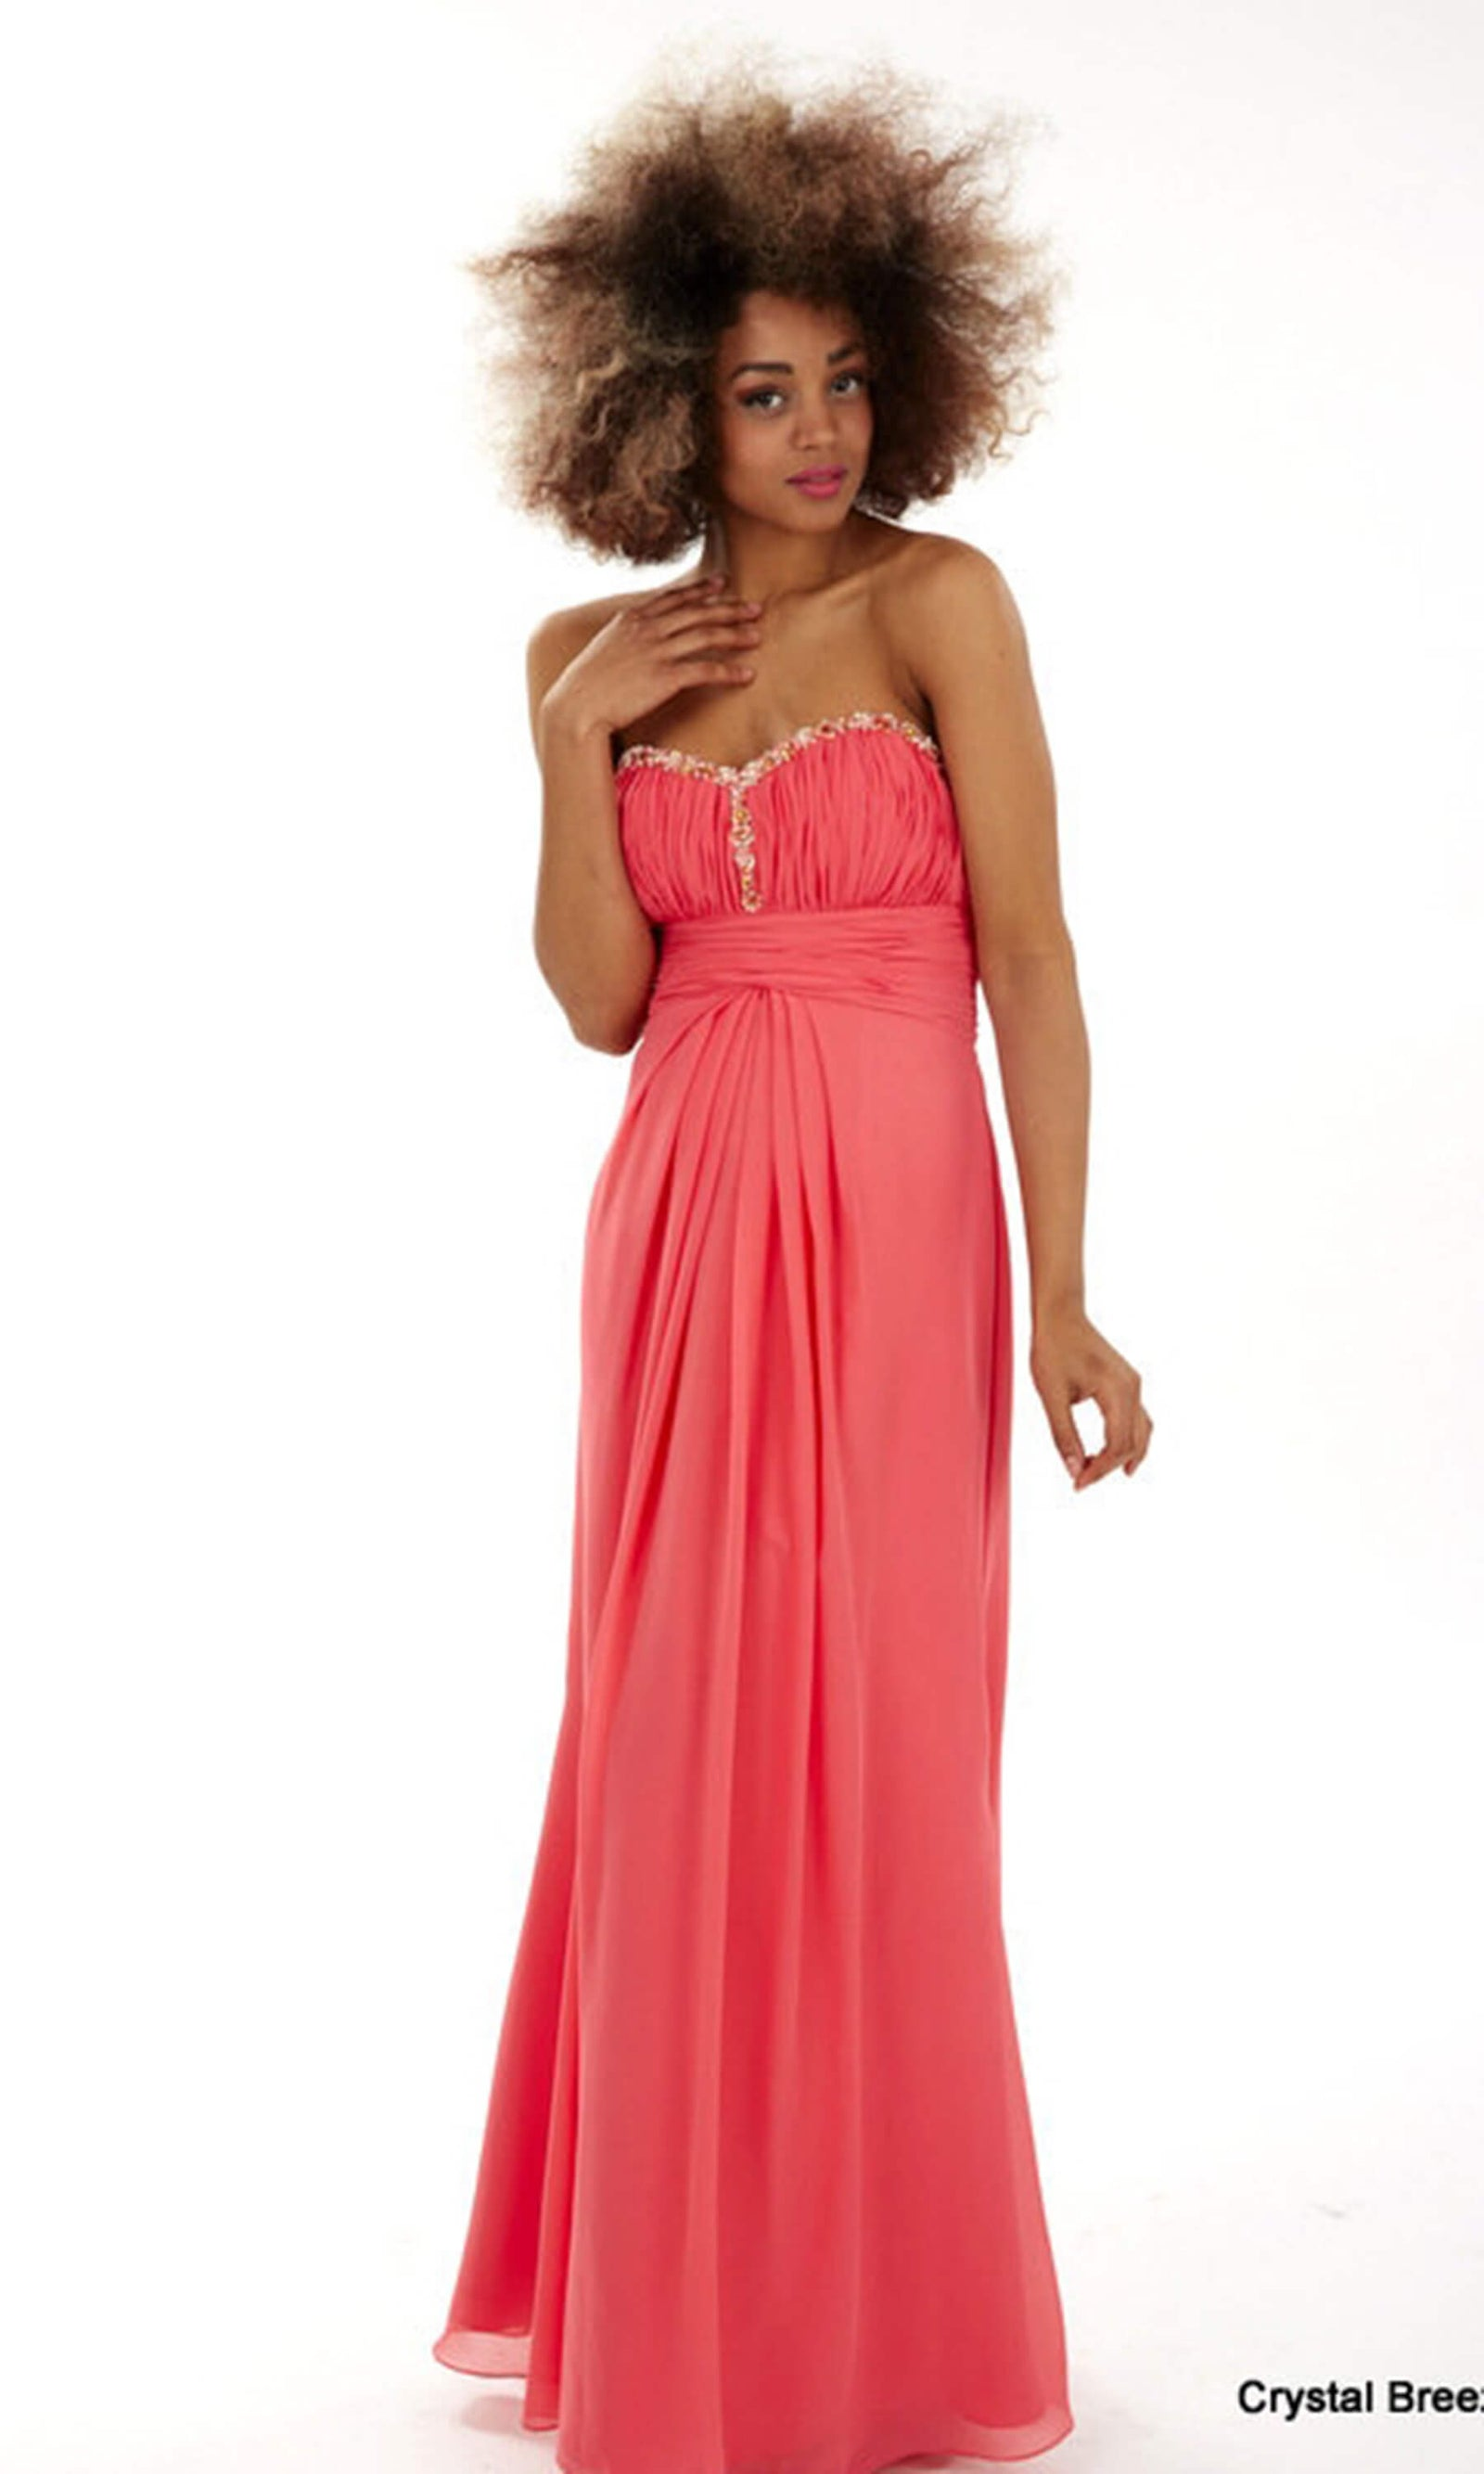 Rosa Watermelon Crystal Breeze Dress With Ruched Bodice